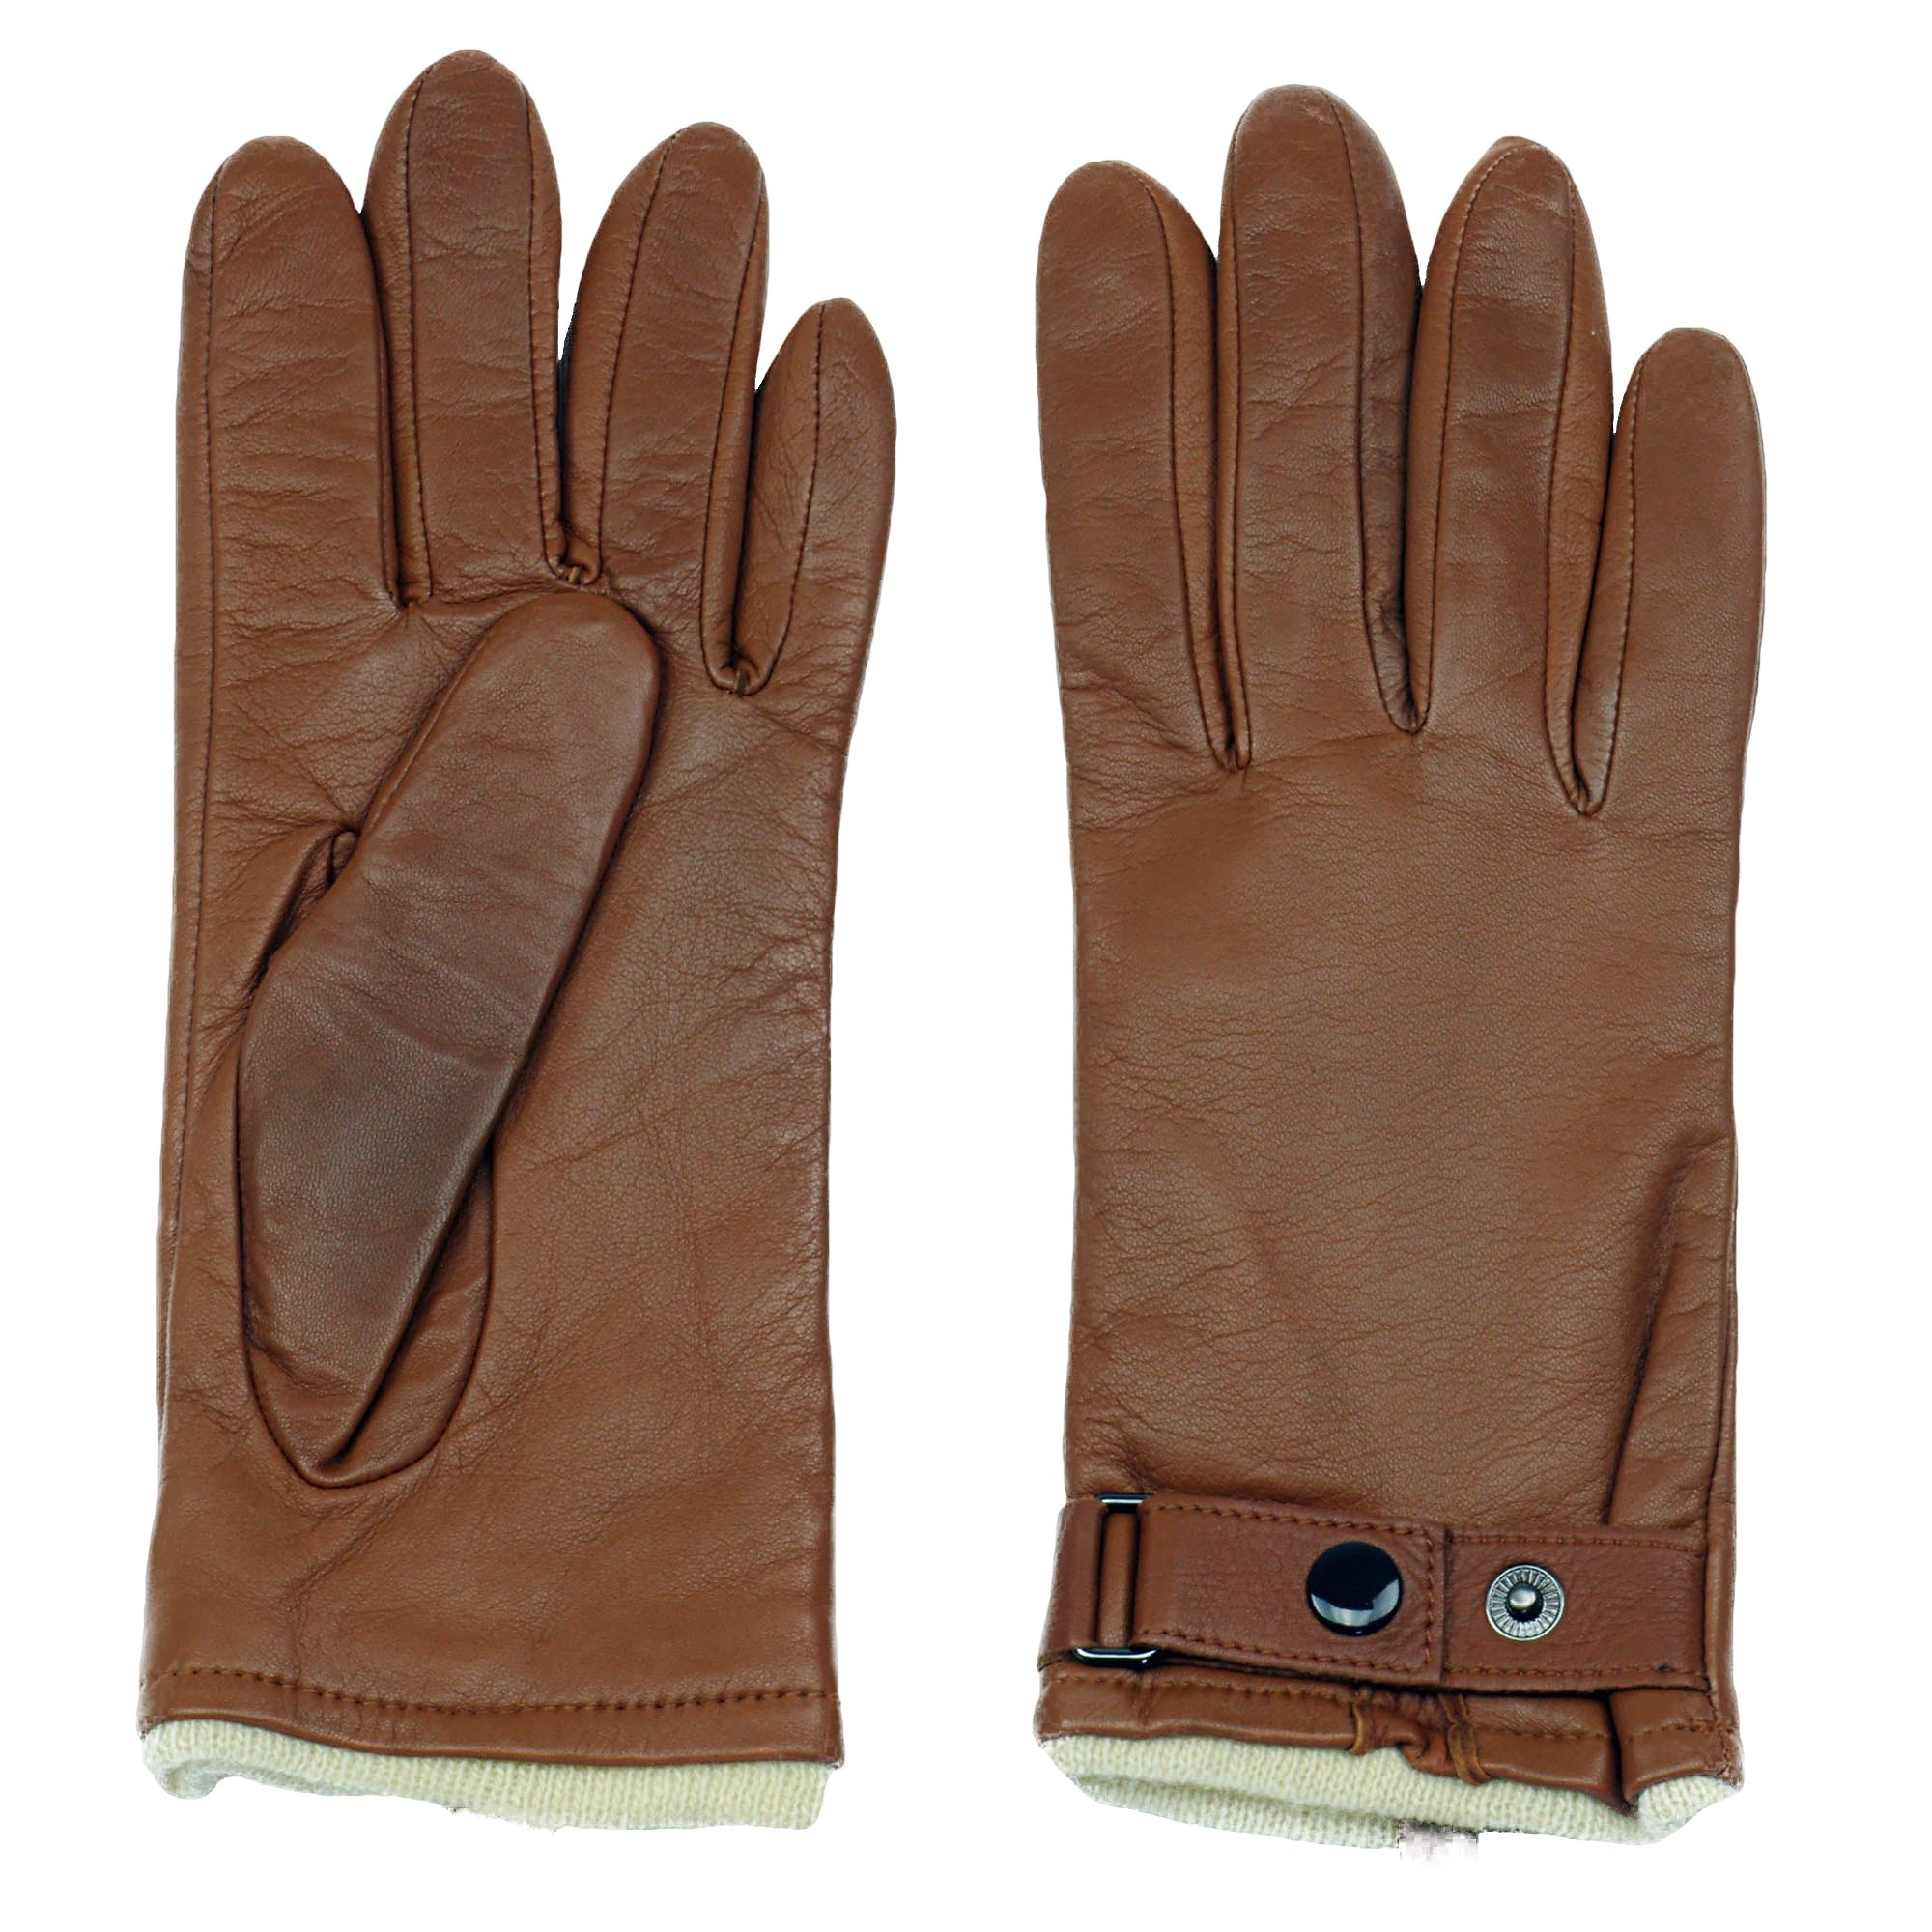 Women's PREMIERE Sheepskin Leather Driving Glove | Cashmere Lined | by GRANDOE (Saddle Cream, 6.5)